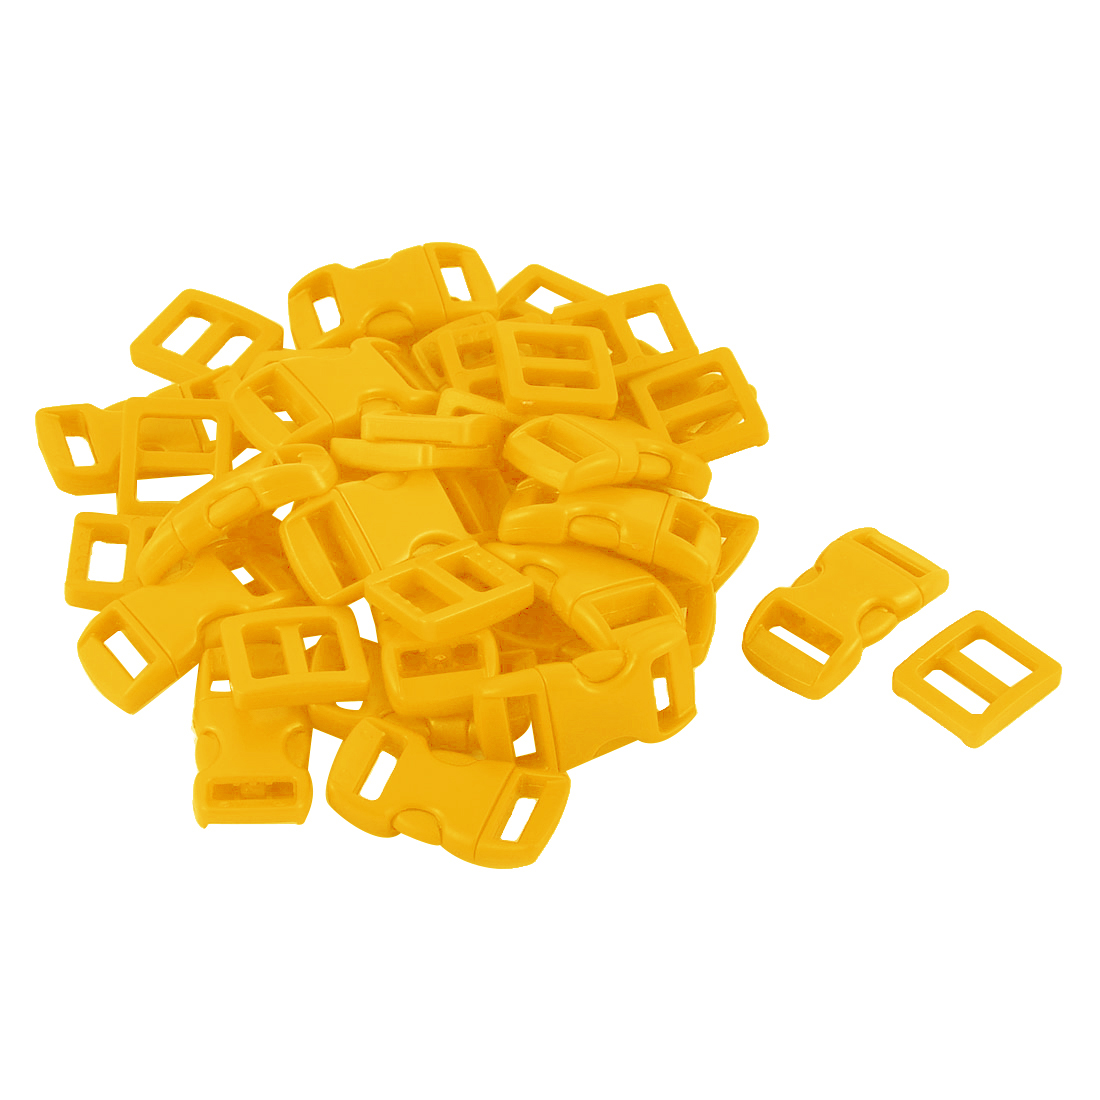 Suitcase Backpack Strap Plastic Side Quick Release Buckle Tri Glide Buckles Yellow 40 in 1